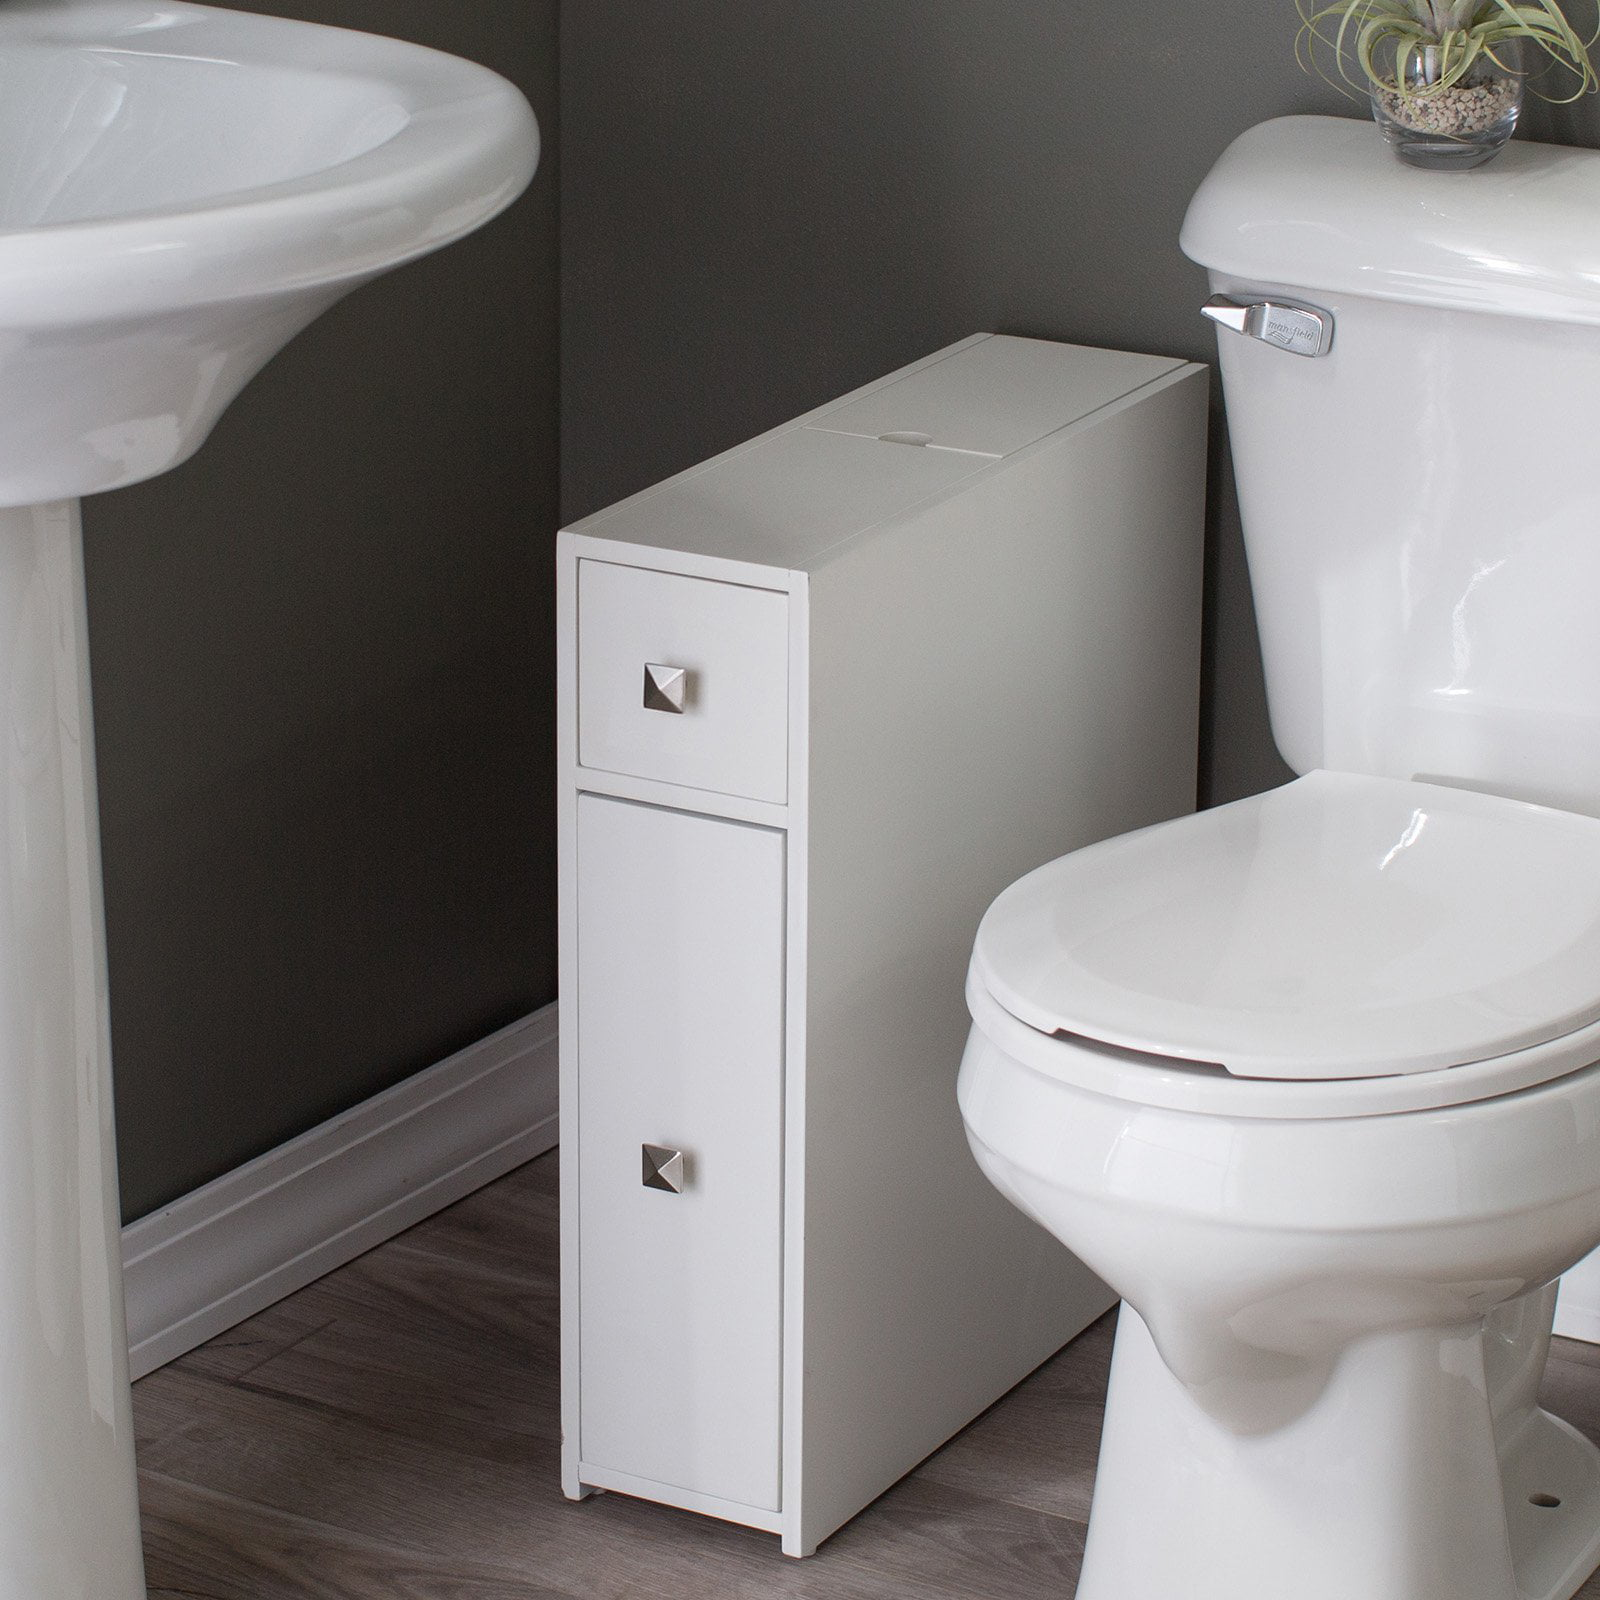 White narrow bathroom cabinet slim storage drawers toilet - Narrow toilets for small bathrooms ...